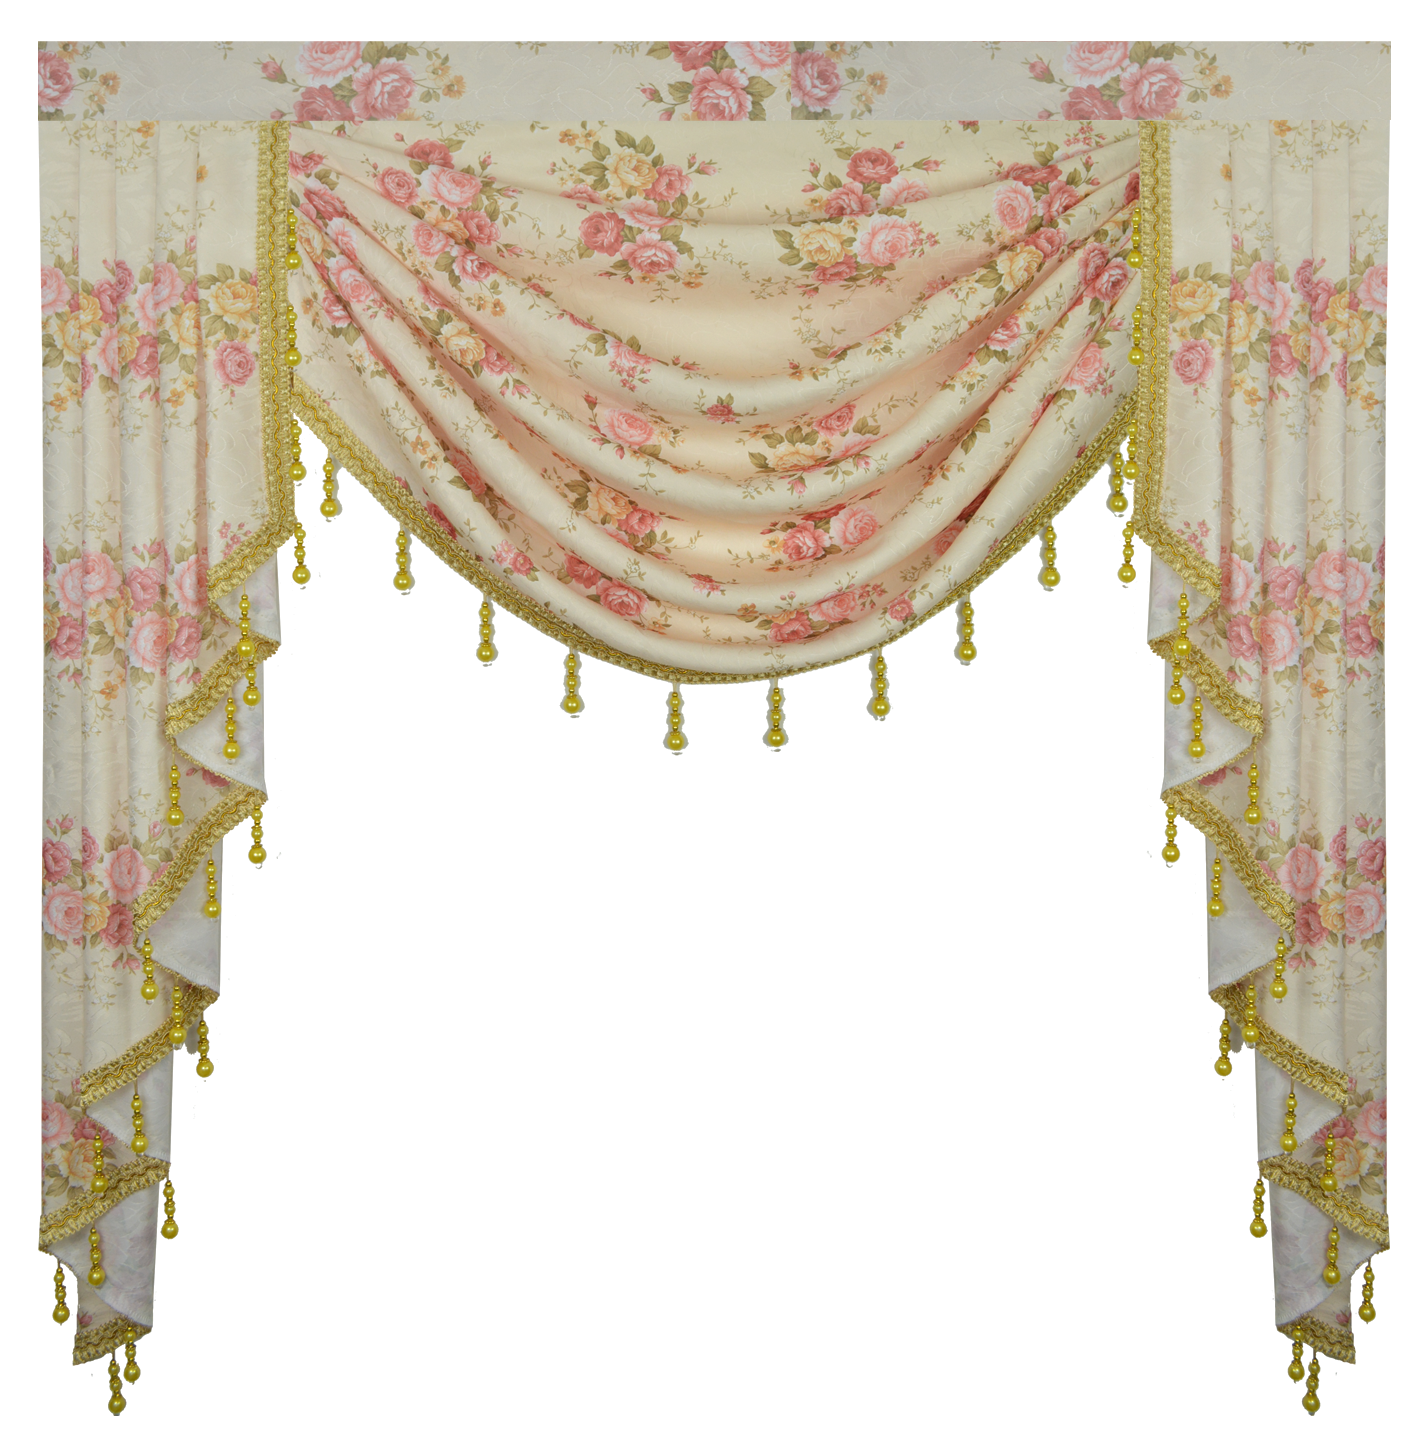 Pink Flower Pastoral Curtains For Living Room Valance Swag Lambrequin For Dining Room Curtains For Bedroom Window Swag Royal